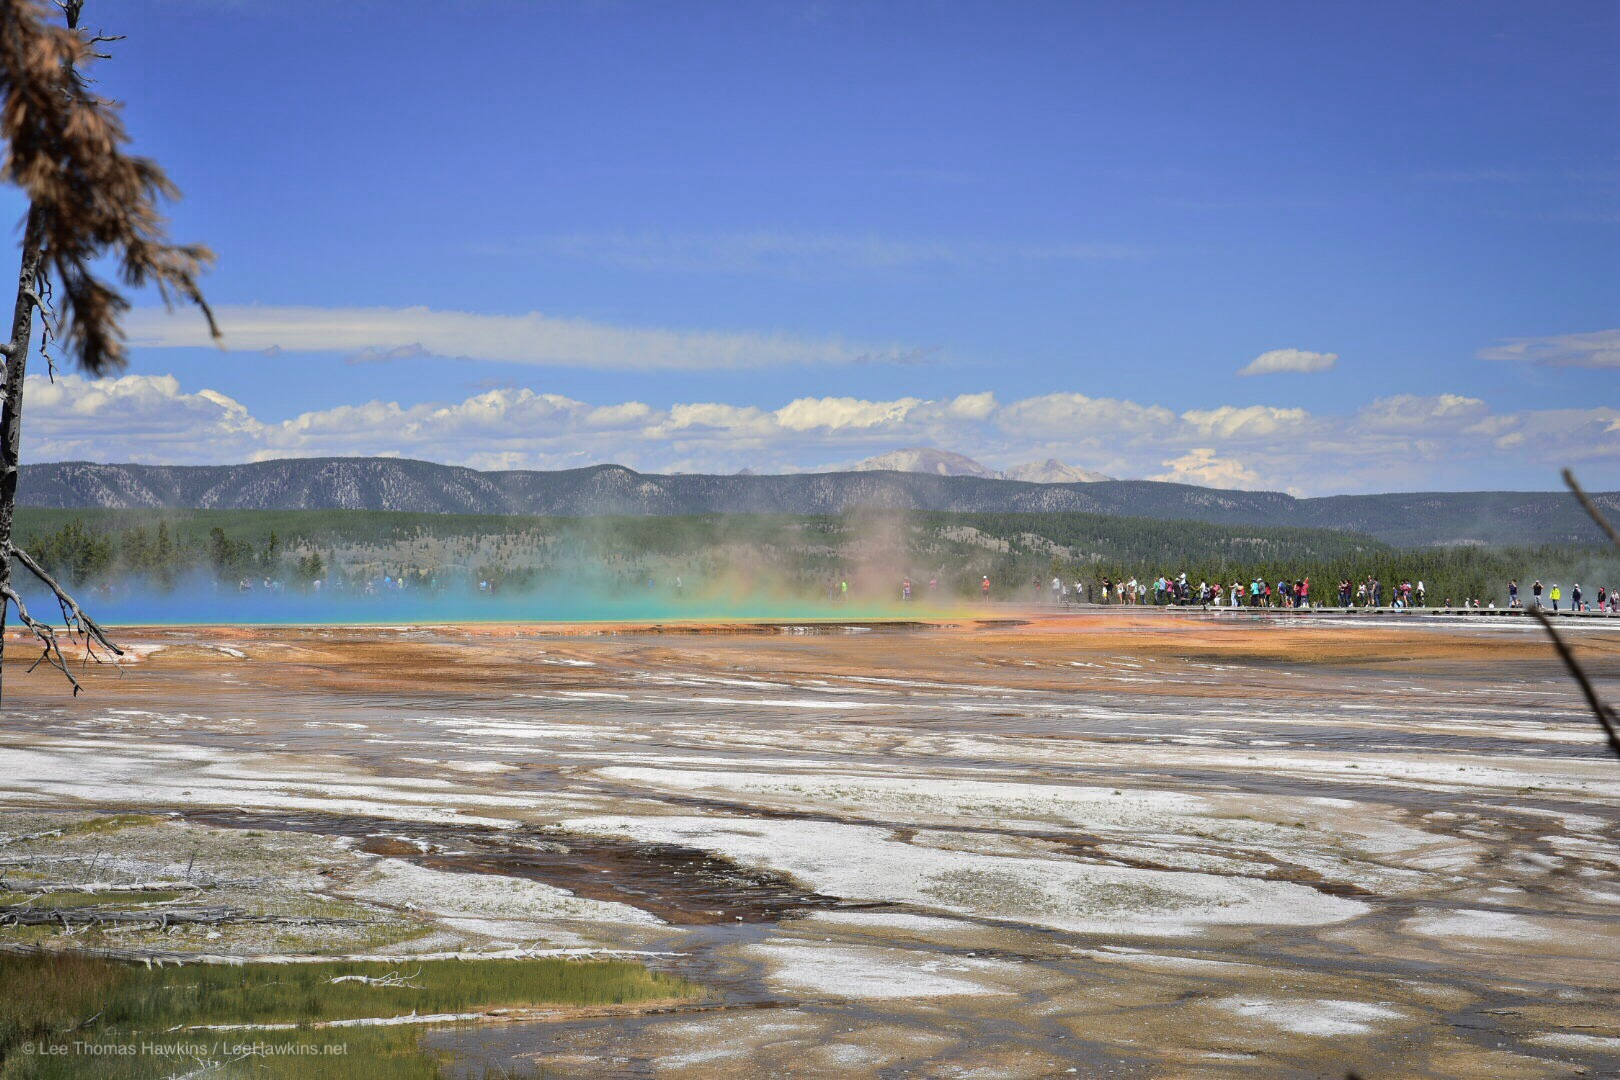 Colored steam rises from a hot spring in a barren landscape surrounded by picturesque mountains.